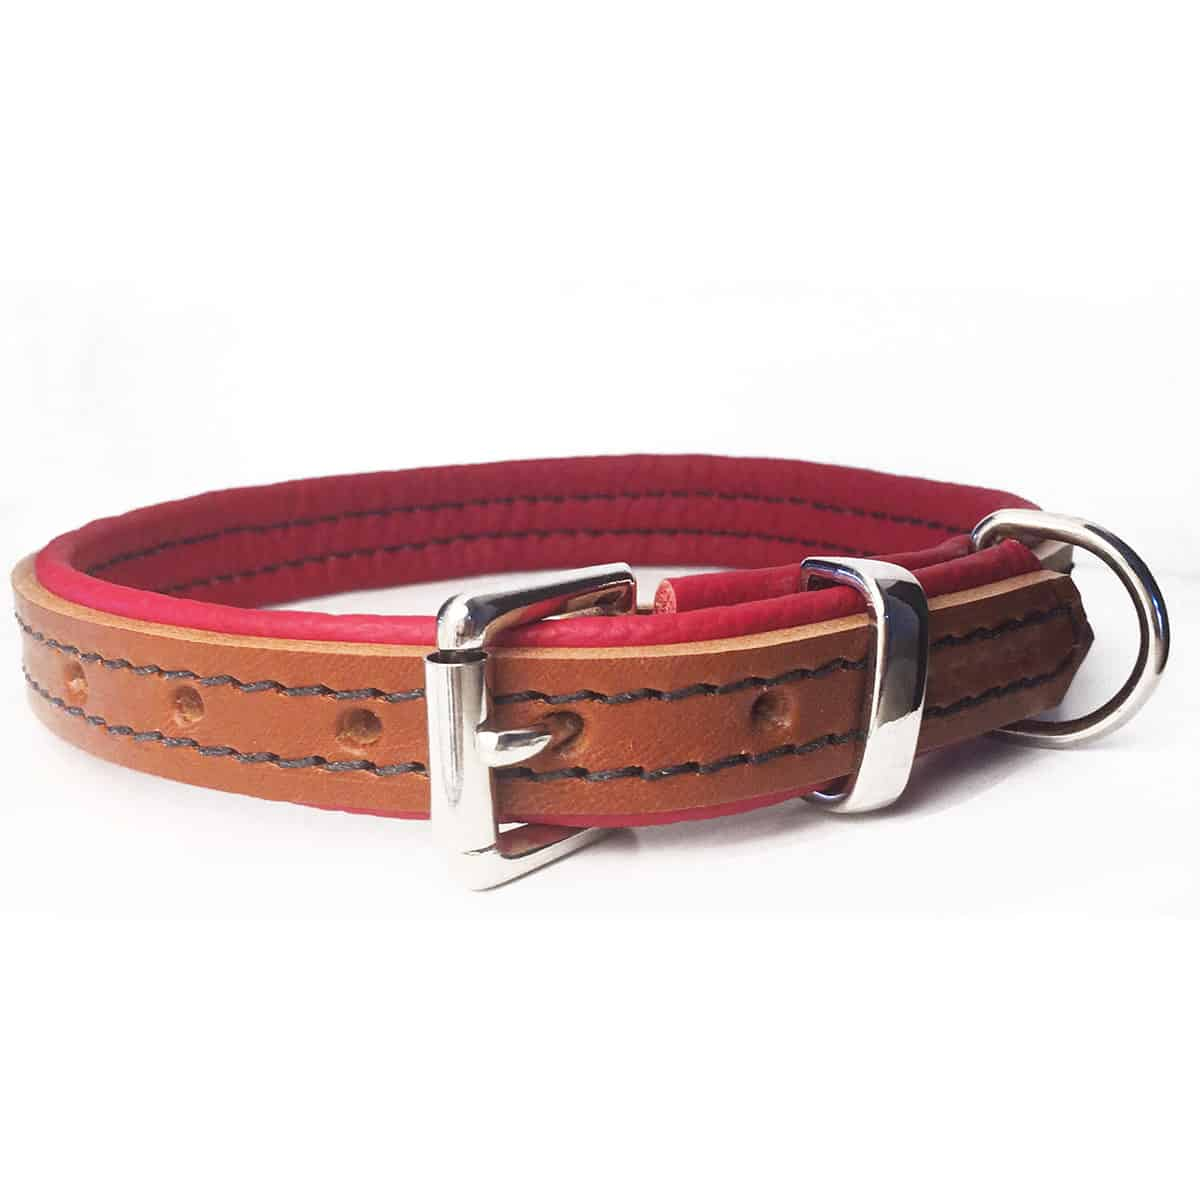 Tan and red padded leather dog collar